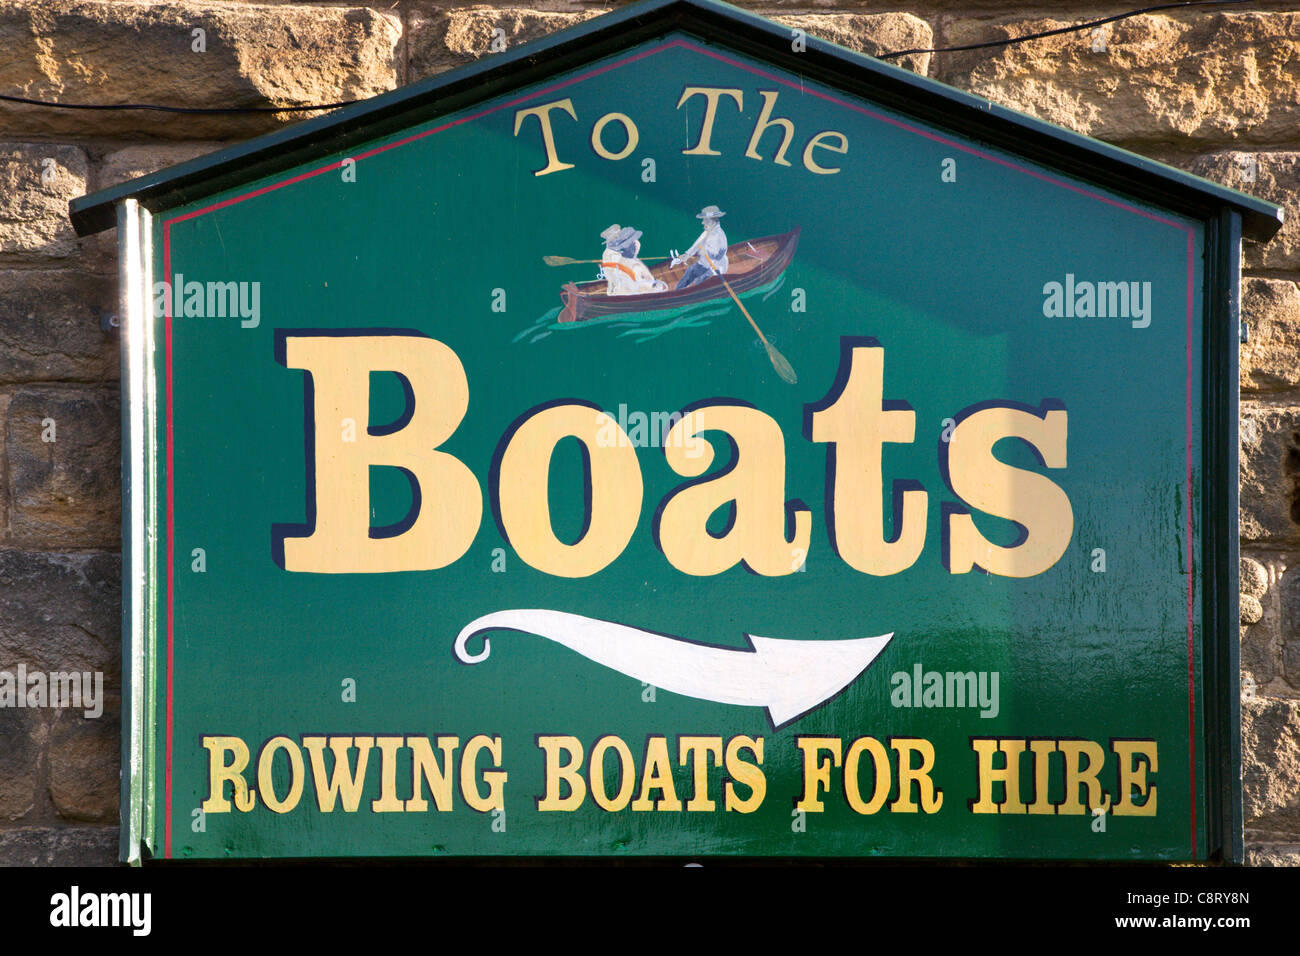 Rowing Boats For Hire Sign at Knaresborough North Yorkshire England - Stock Image